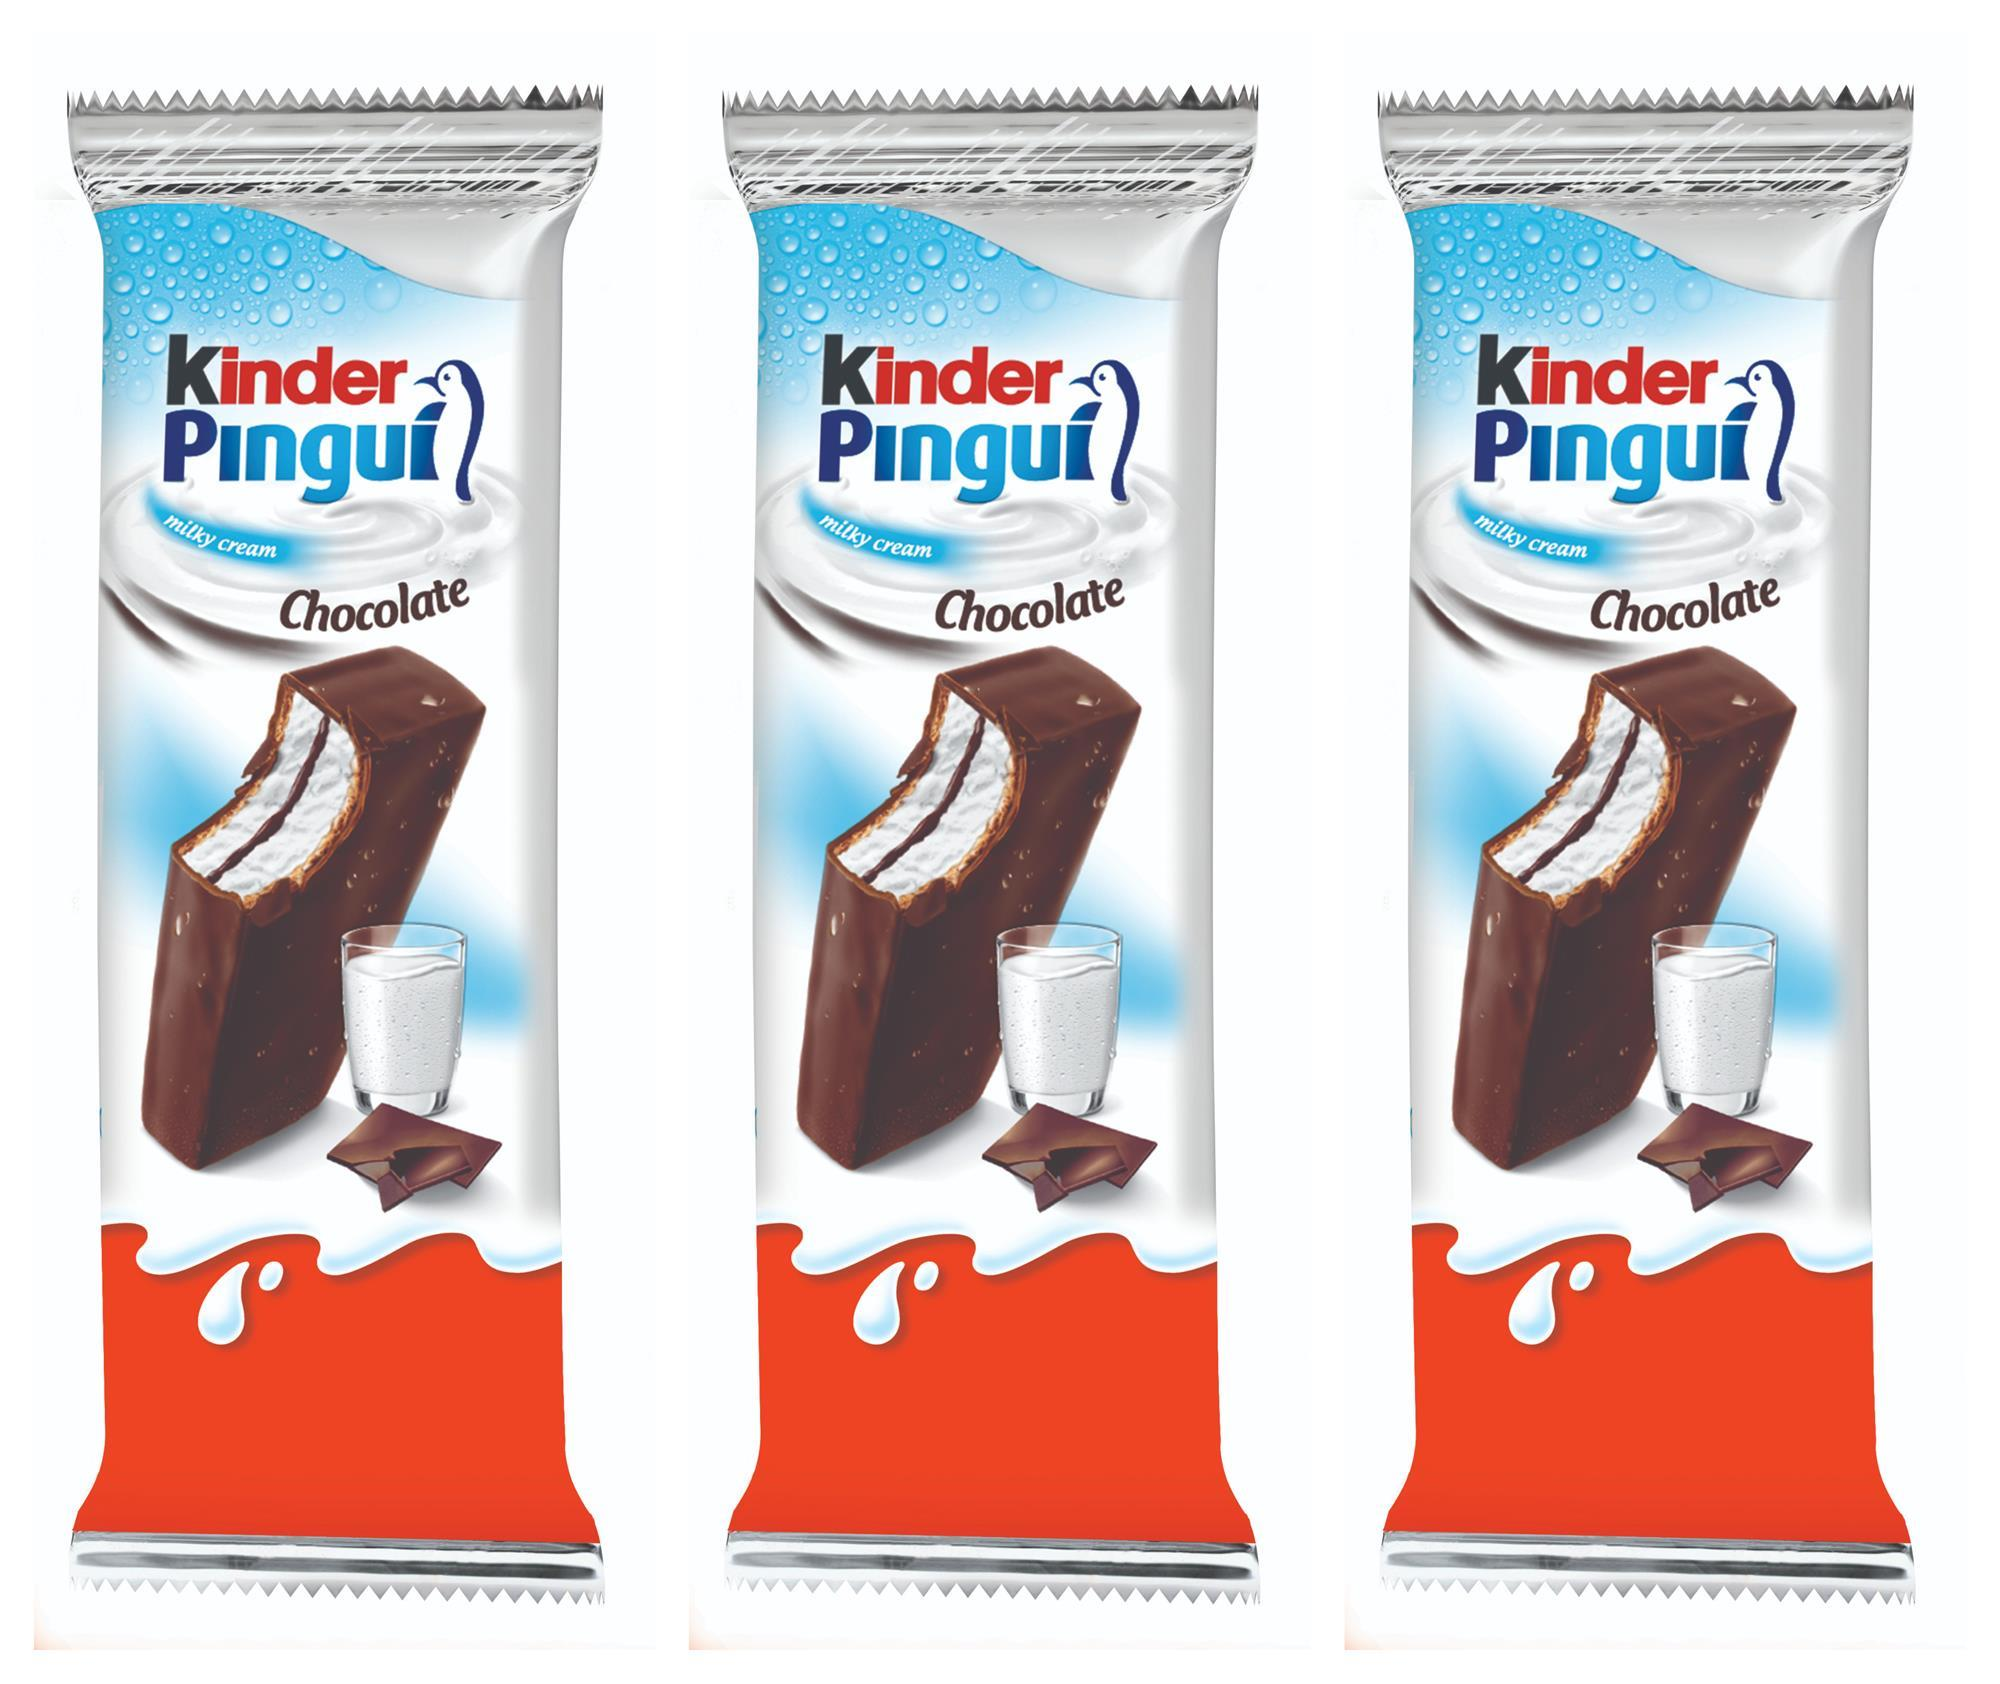 Kinder brings chilled kids' snack products to the UK   News